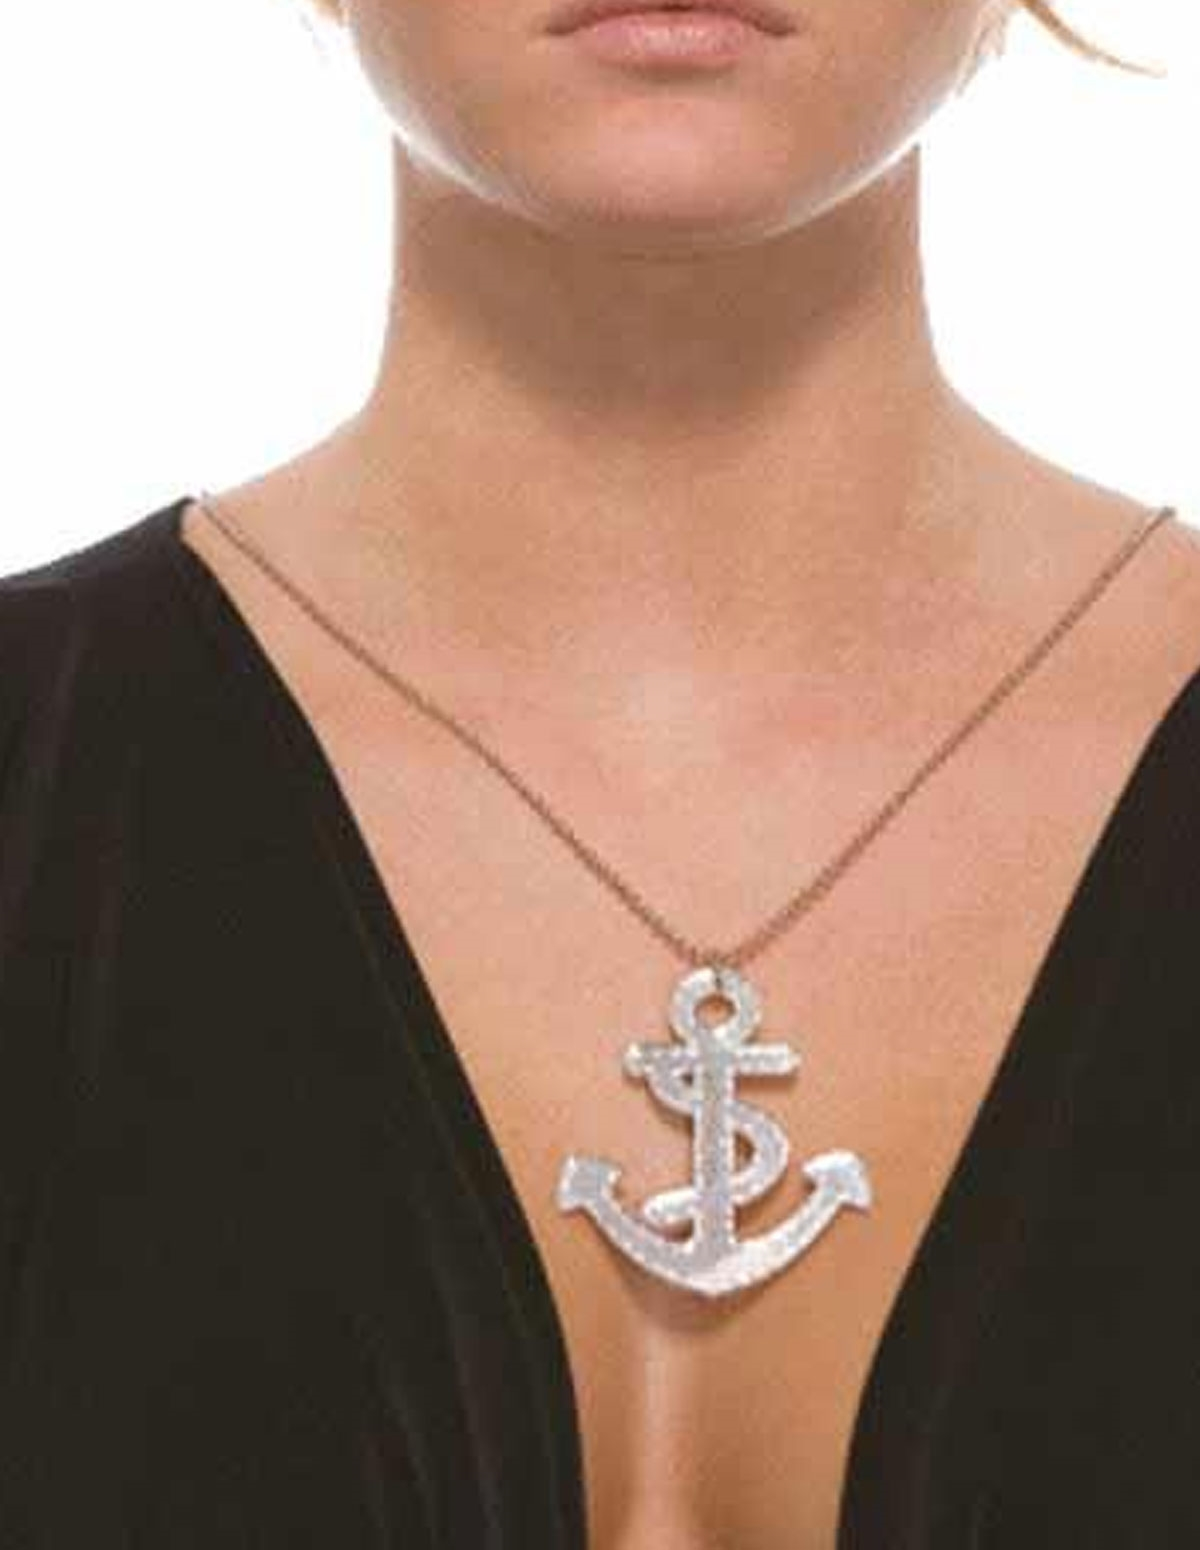 Mirrored Anchor Necklace